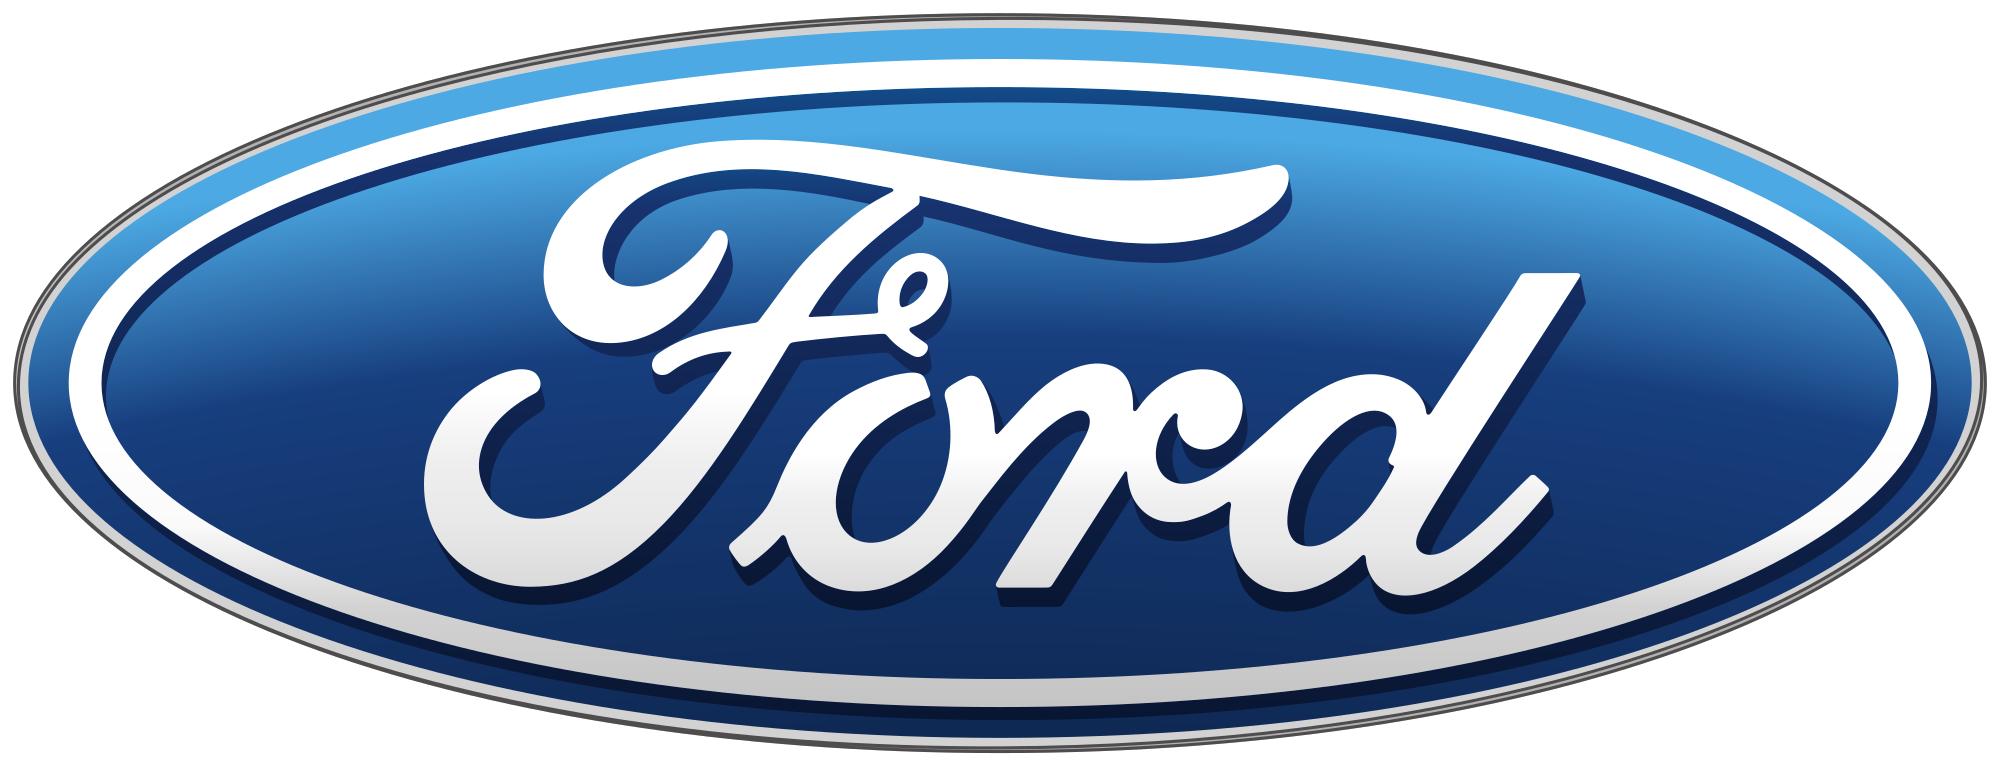 Buy Ford Stock